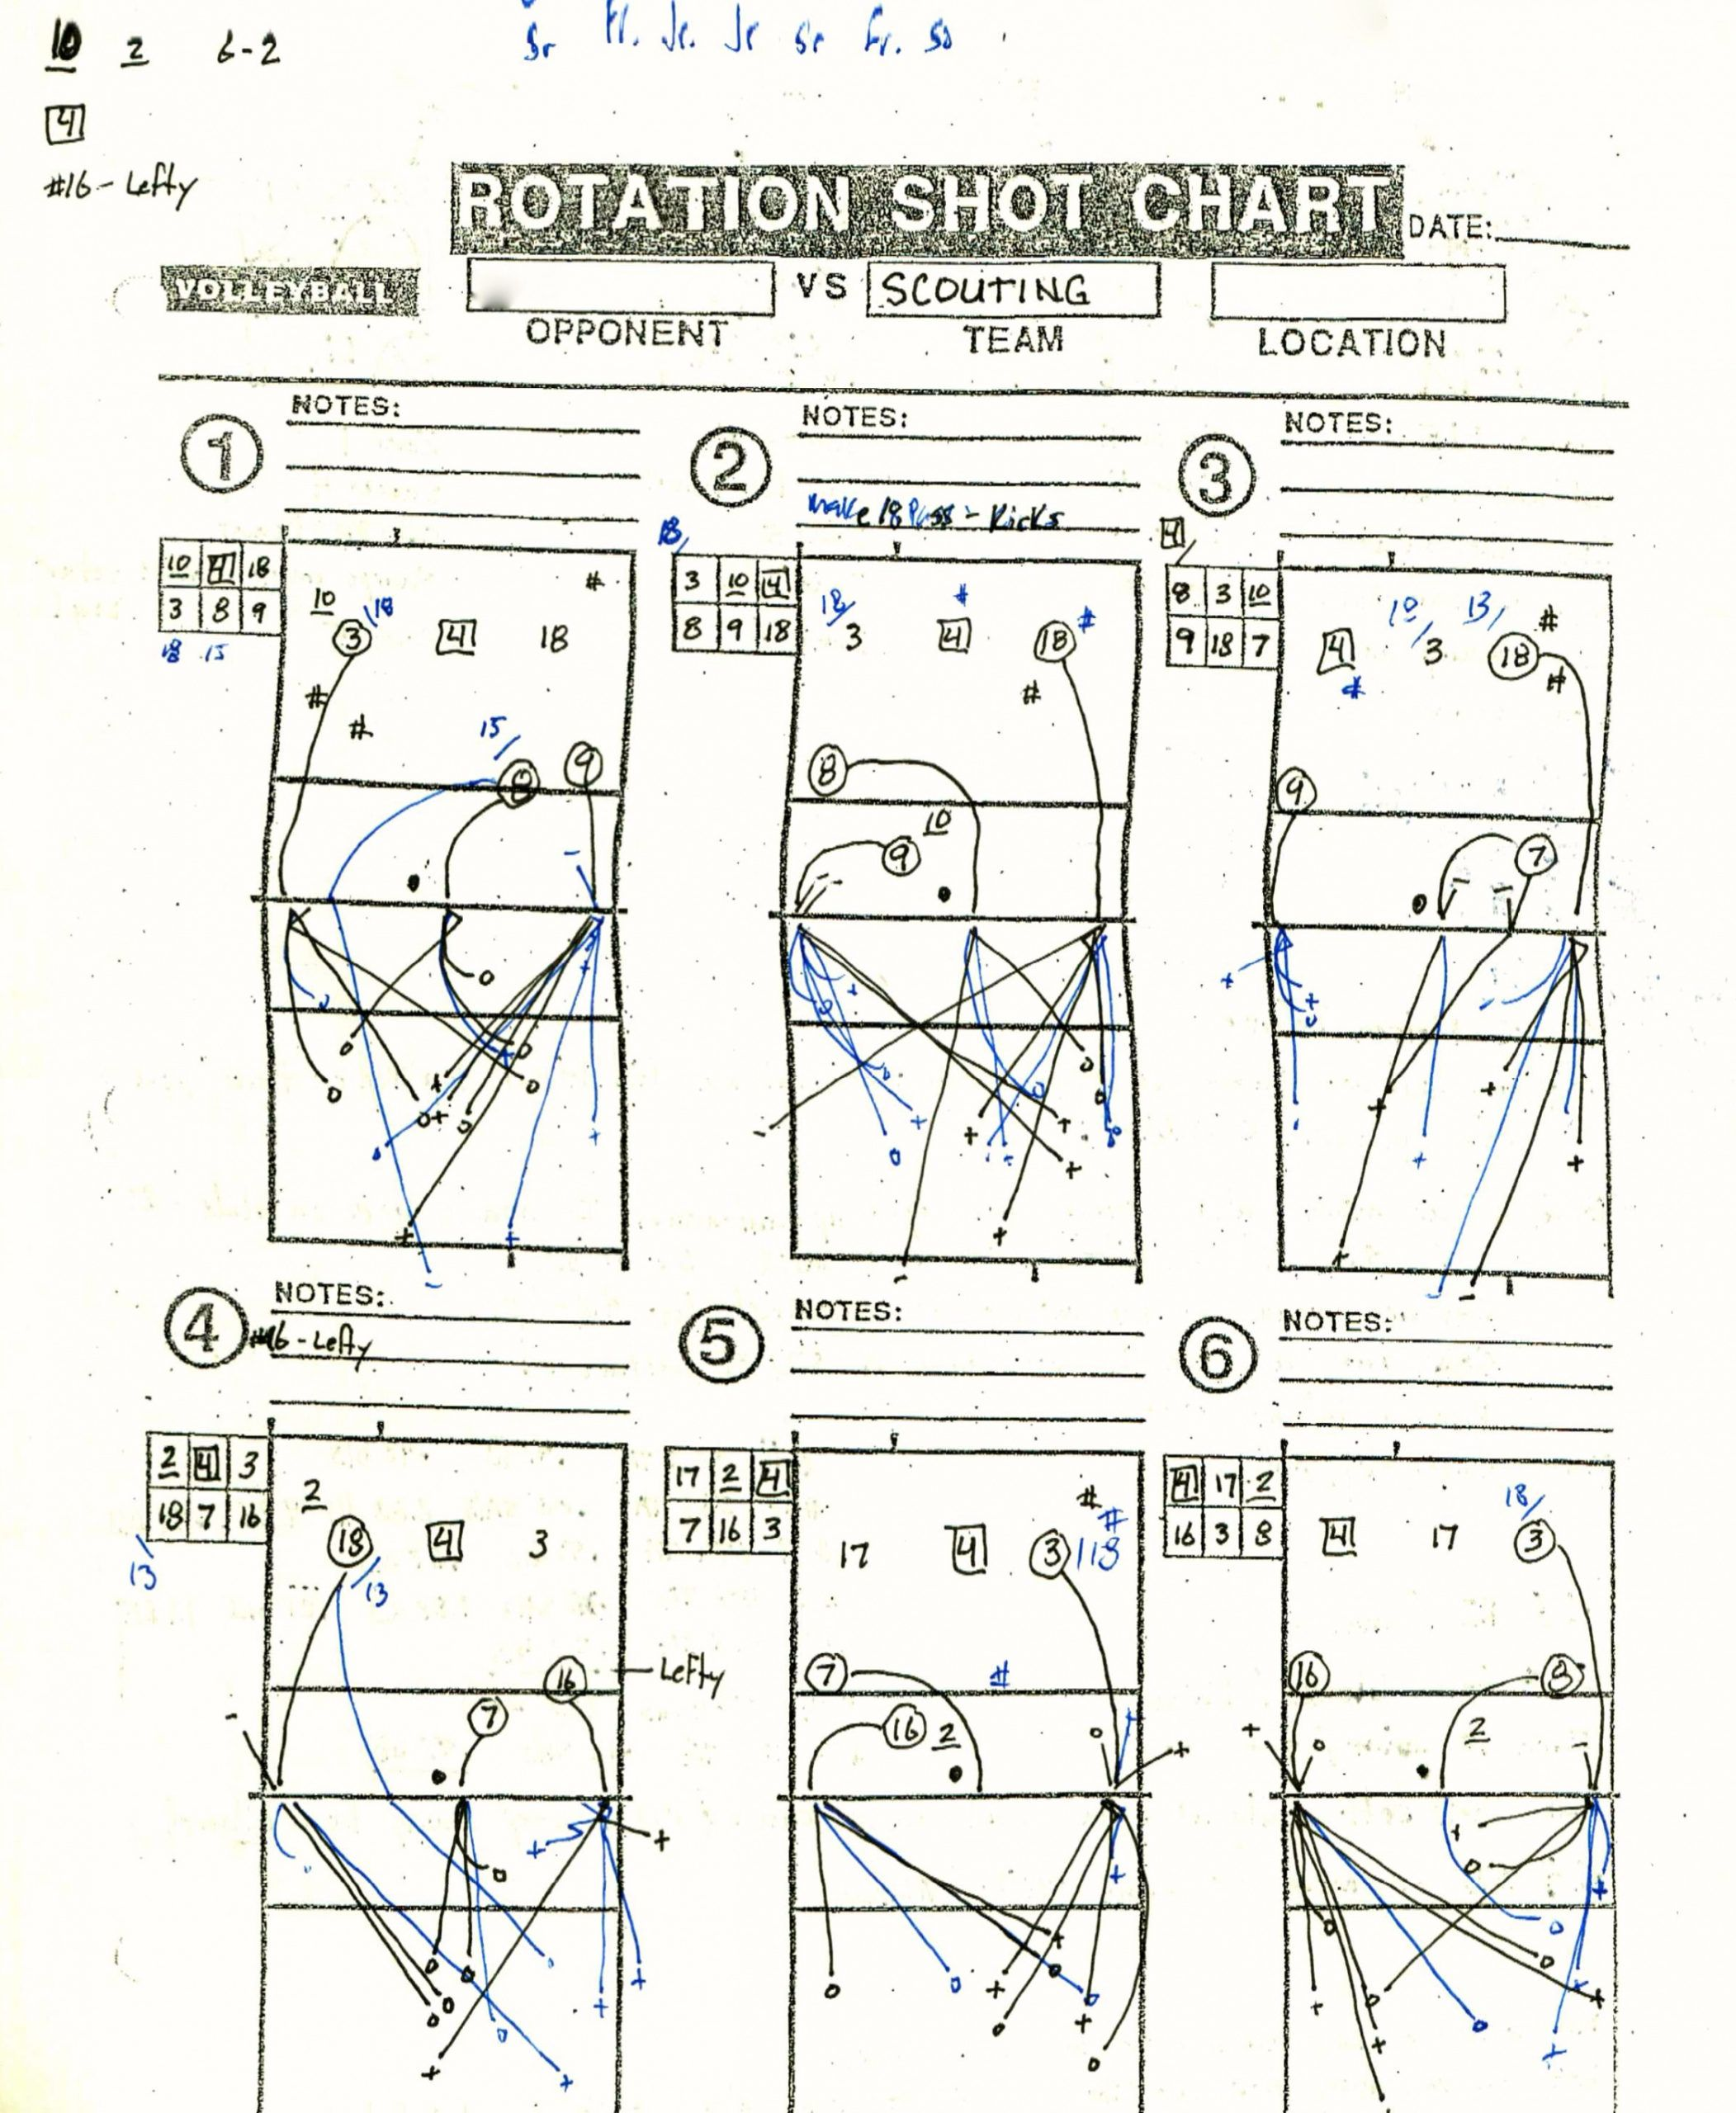 volleyballcoaching101  scouting opponents volleyball scouting report template excel